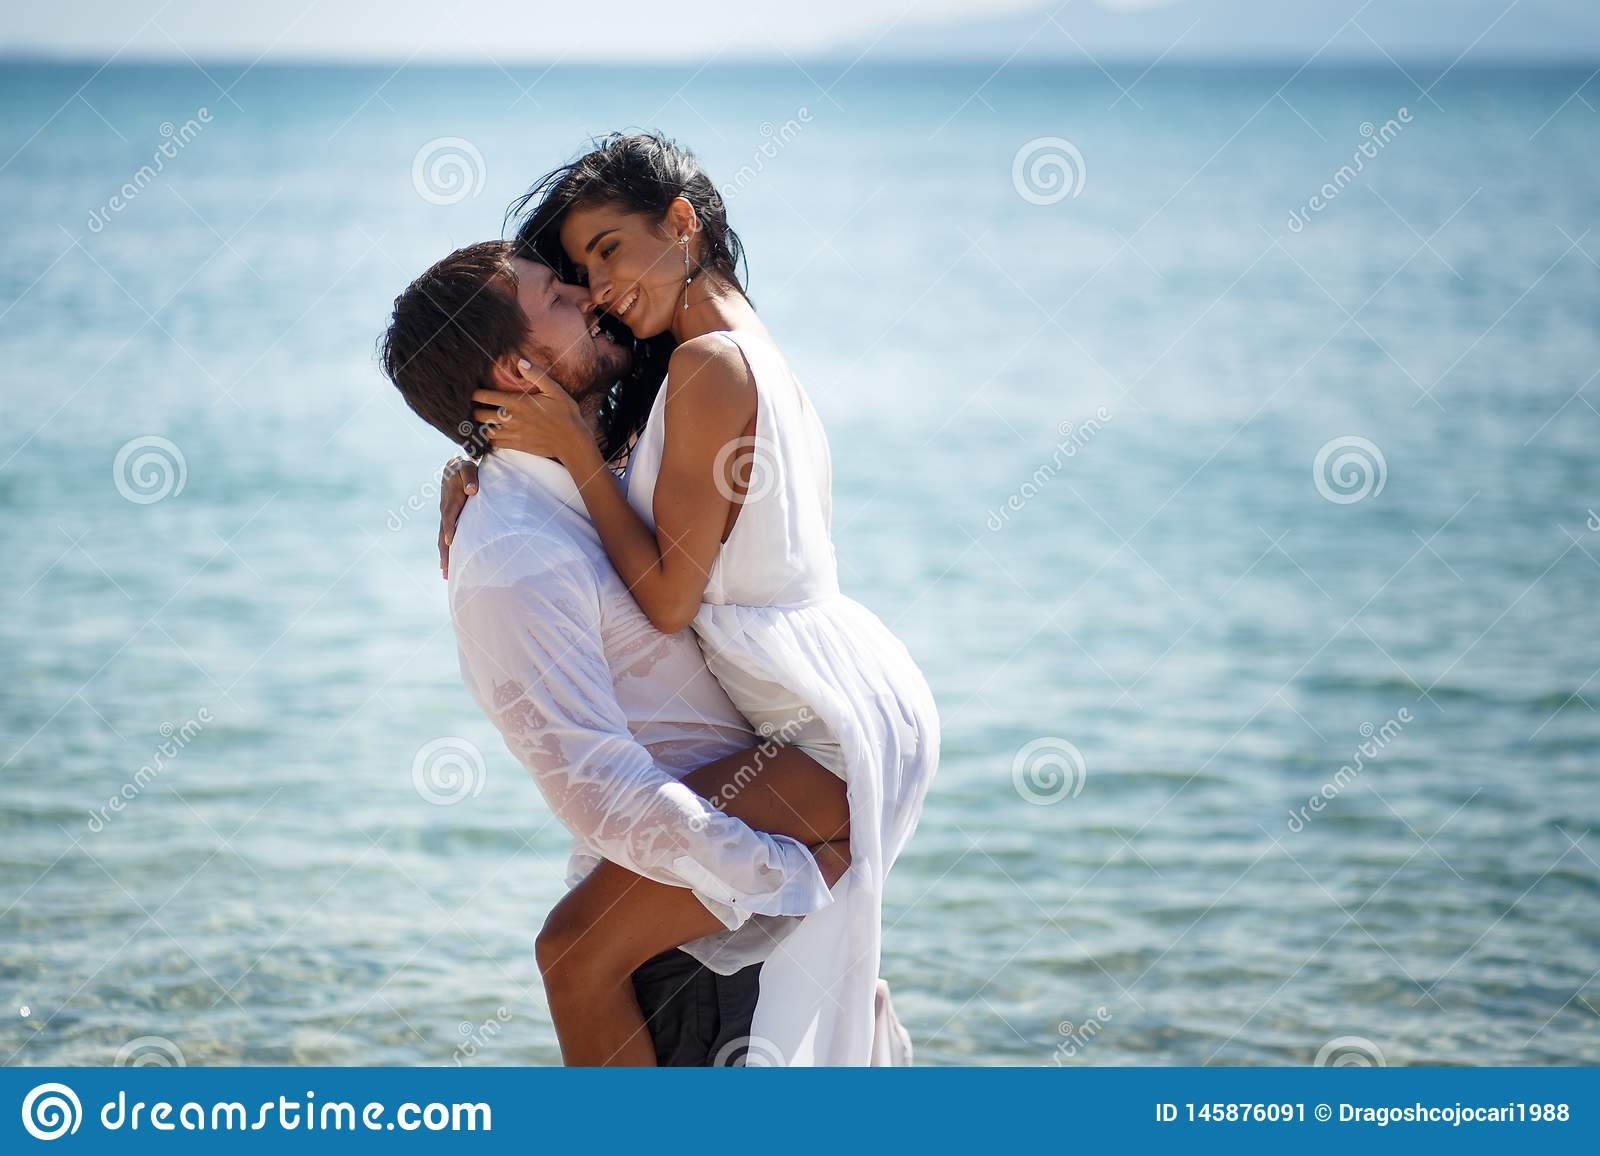 Beautiful wedding couple kissing and embracing in turquoise water, mediterranean sea in Greece.